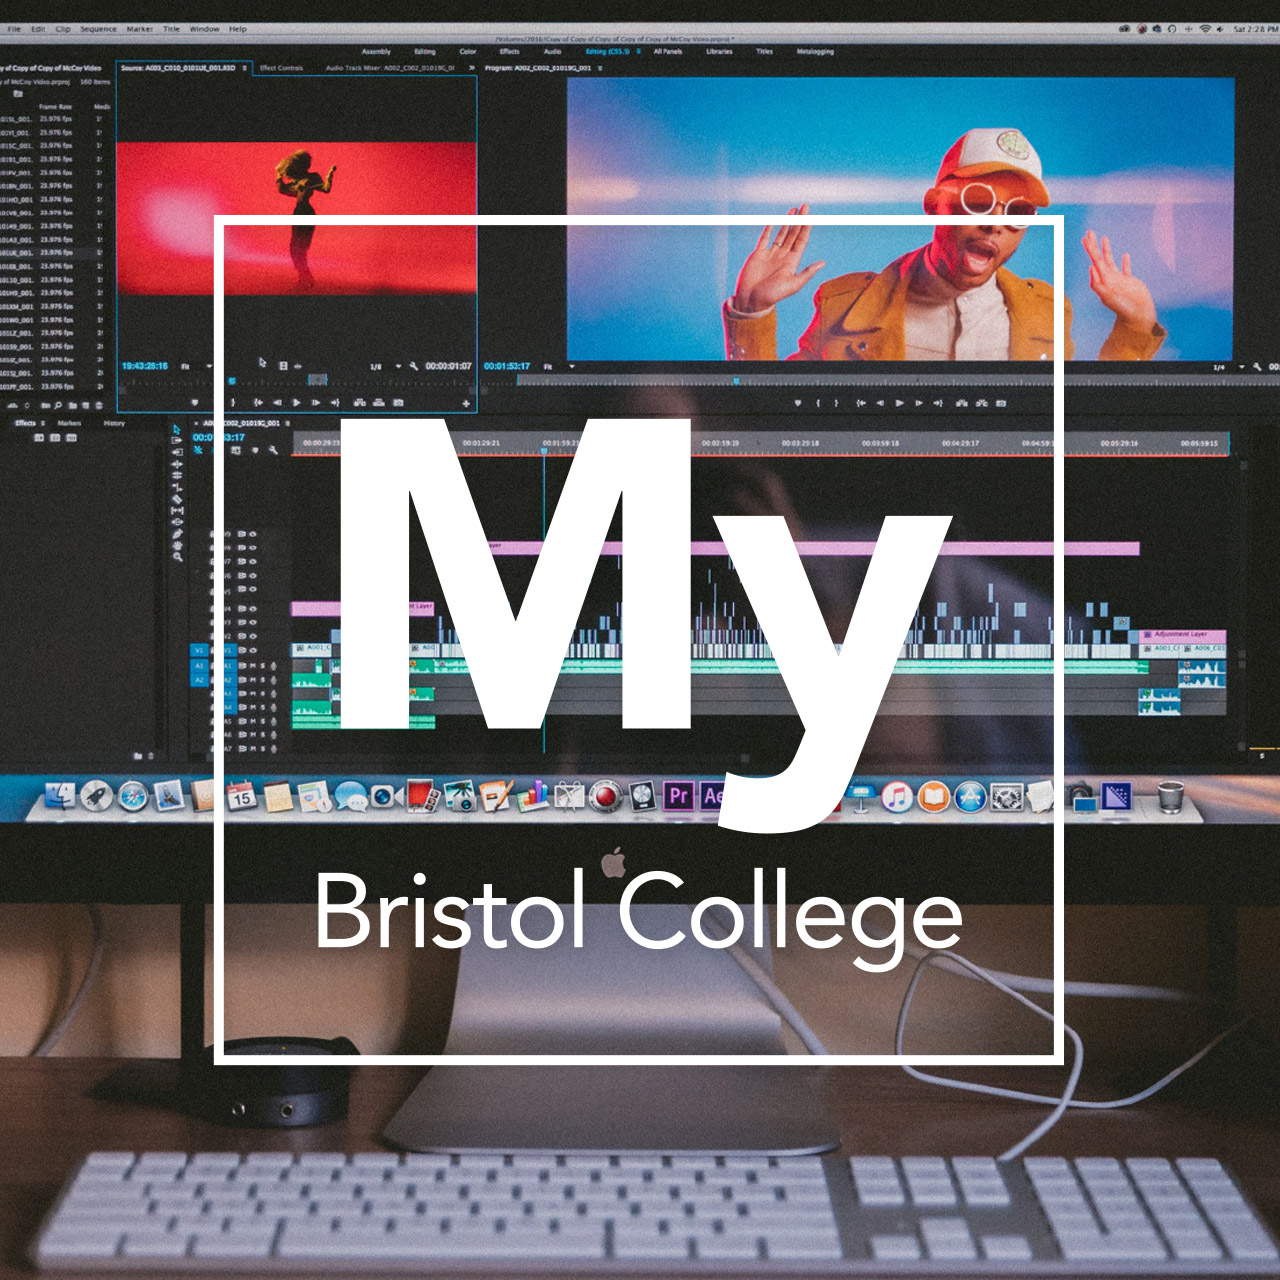 Creative and Digital with My Bristol College overlay